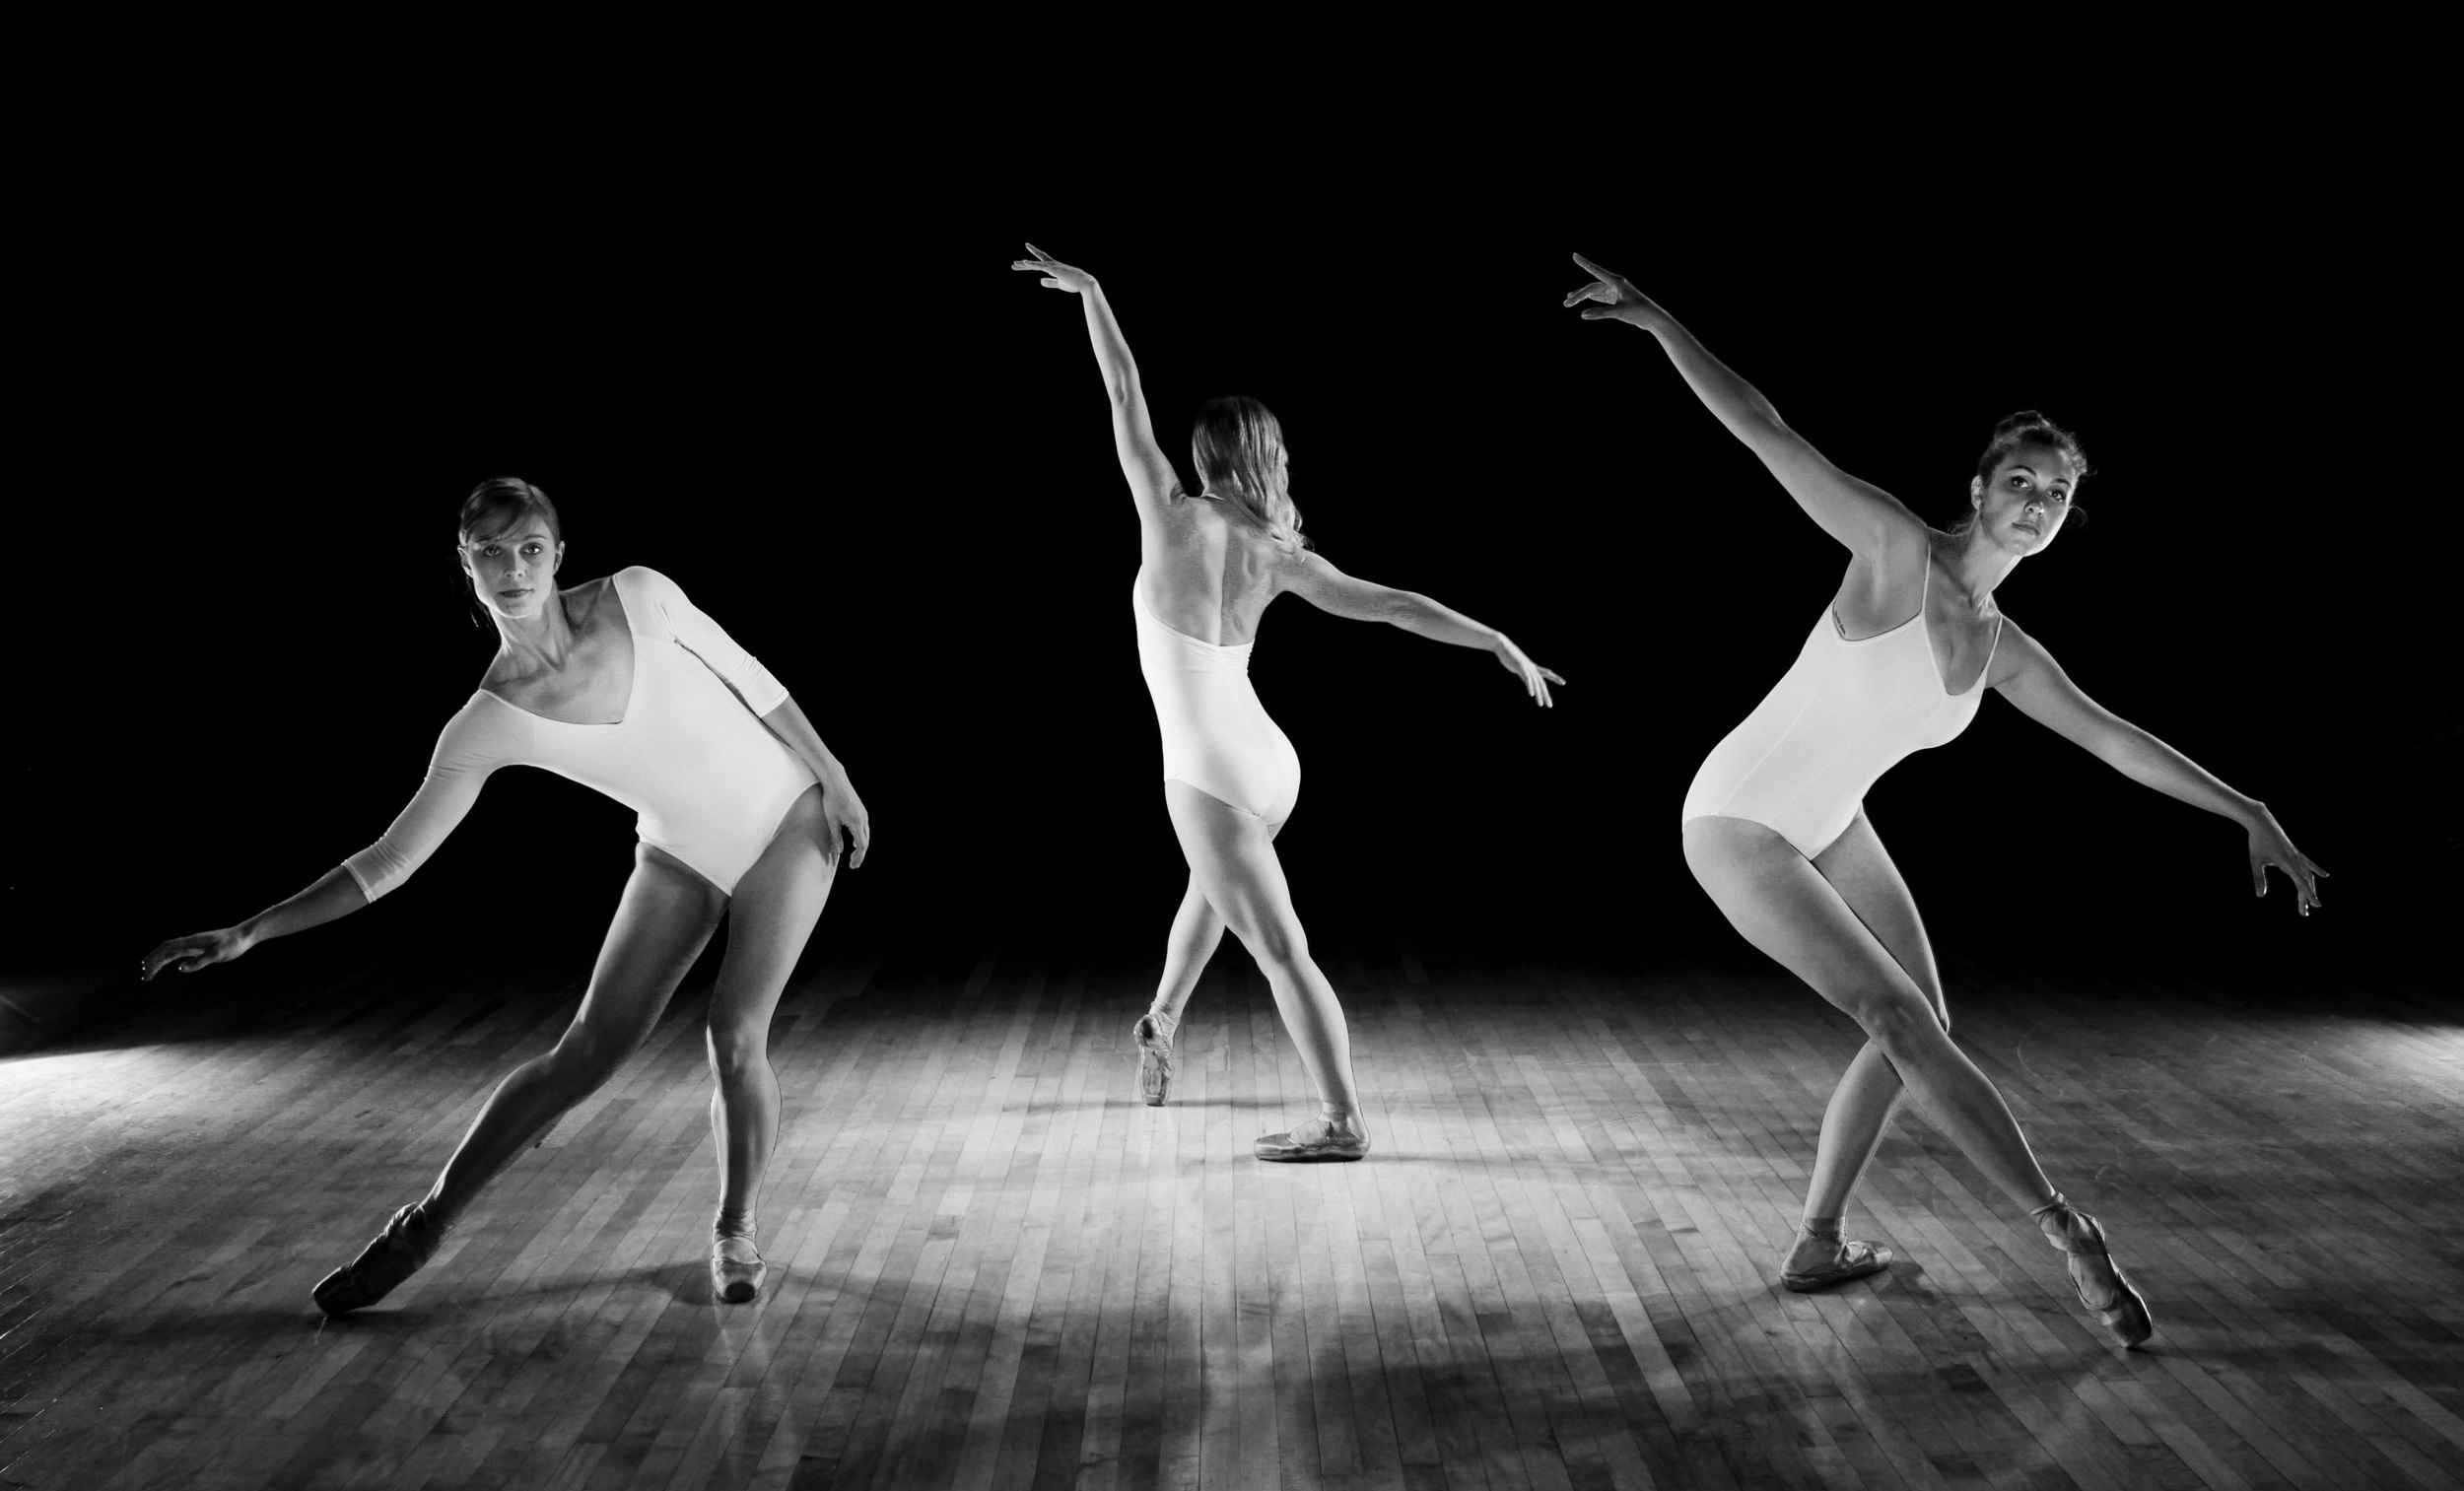 PDX CONTEMPORARY BALLET |  In collaboration with the Alberta Abbey